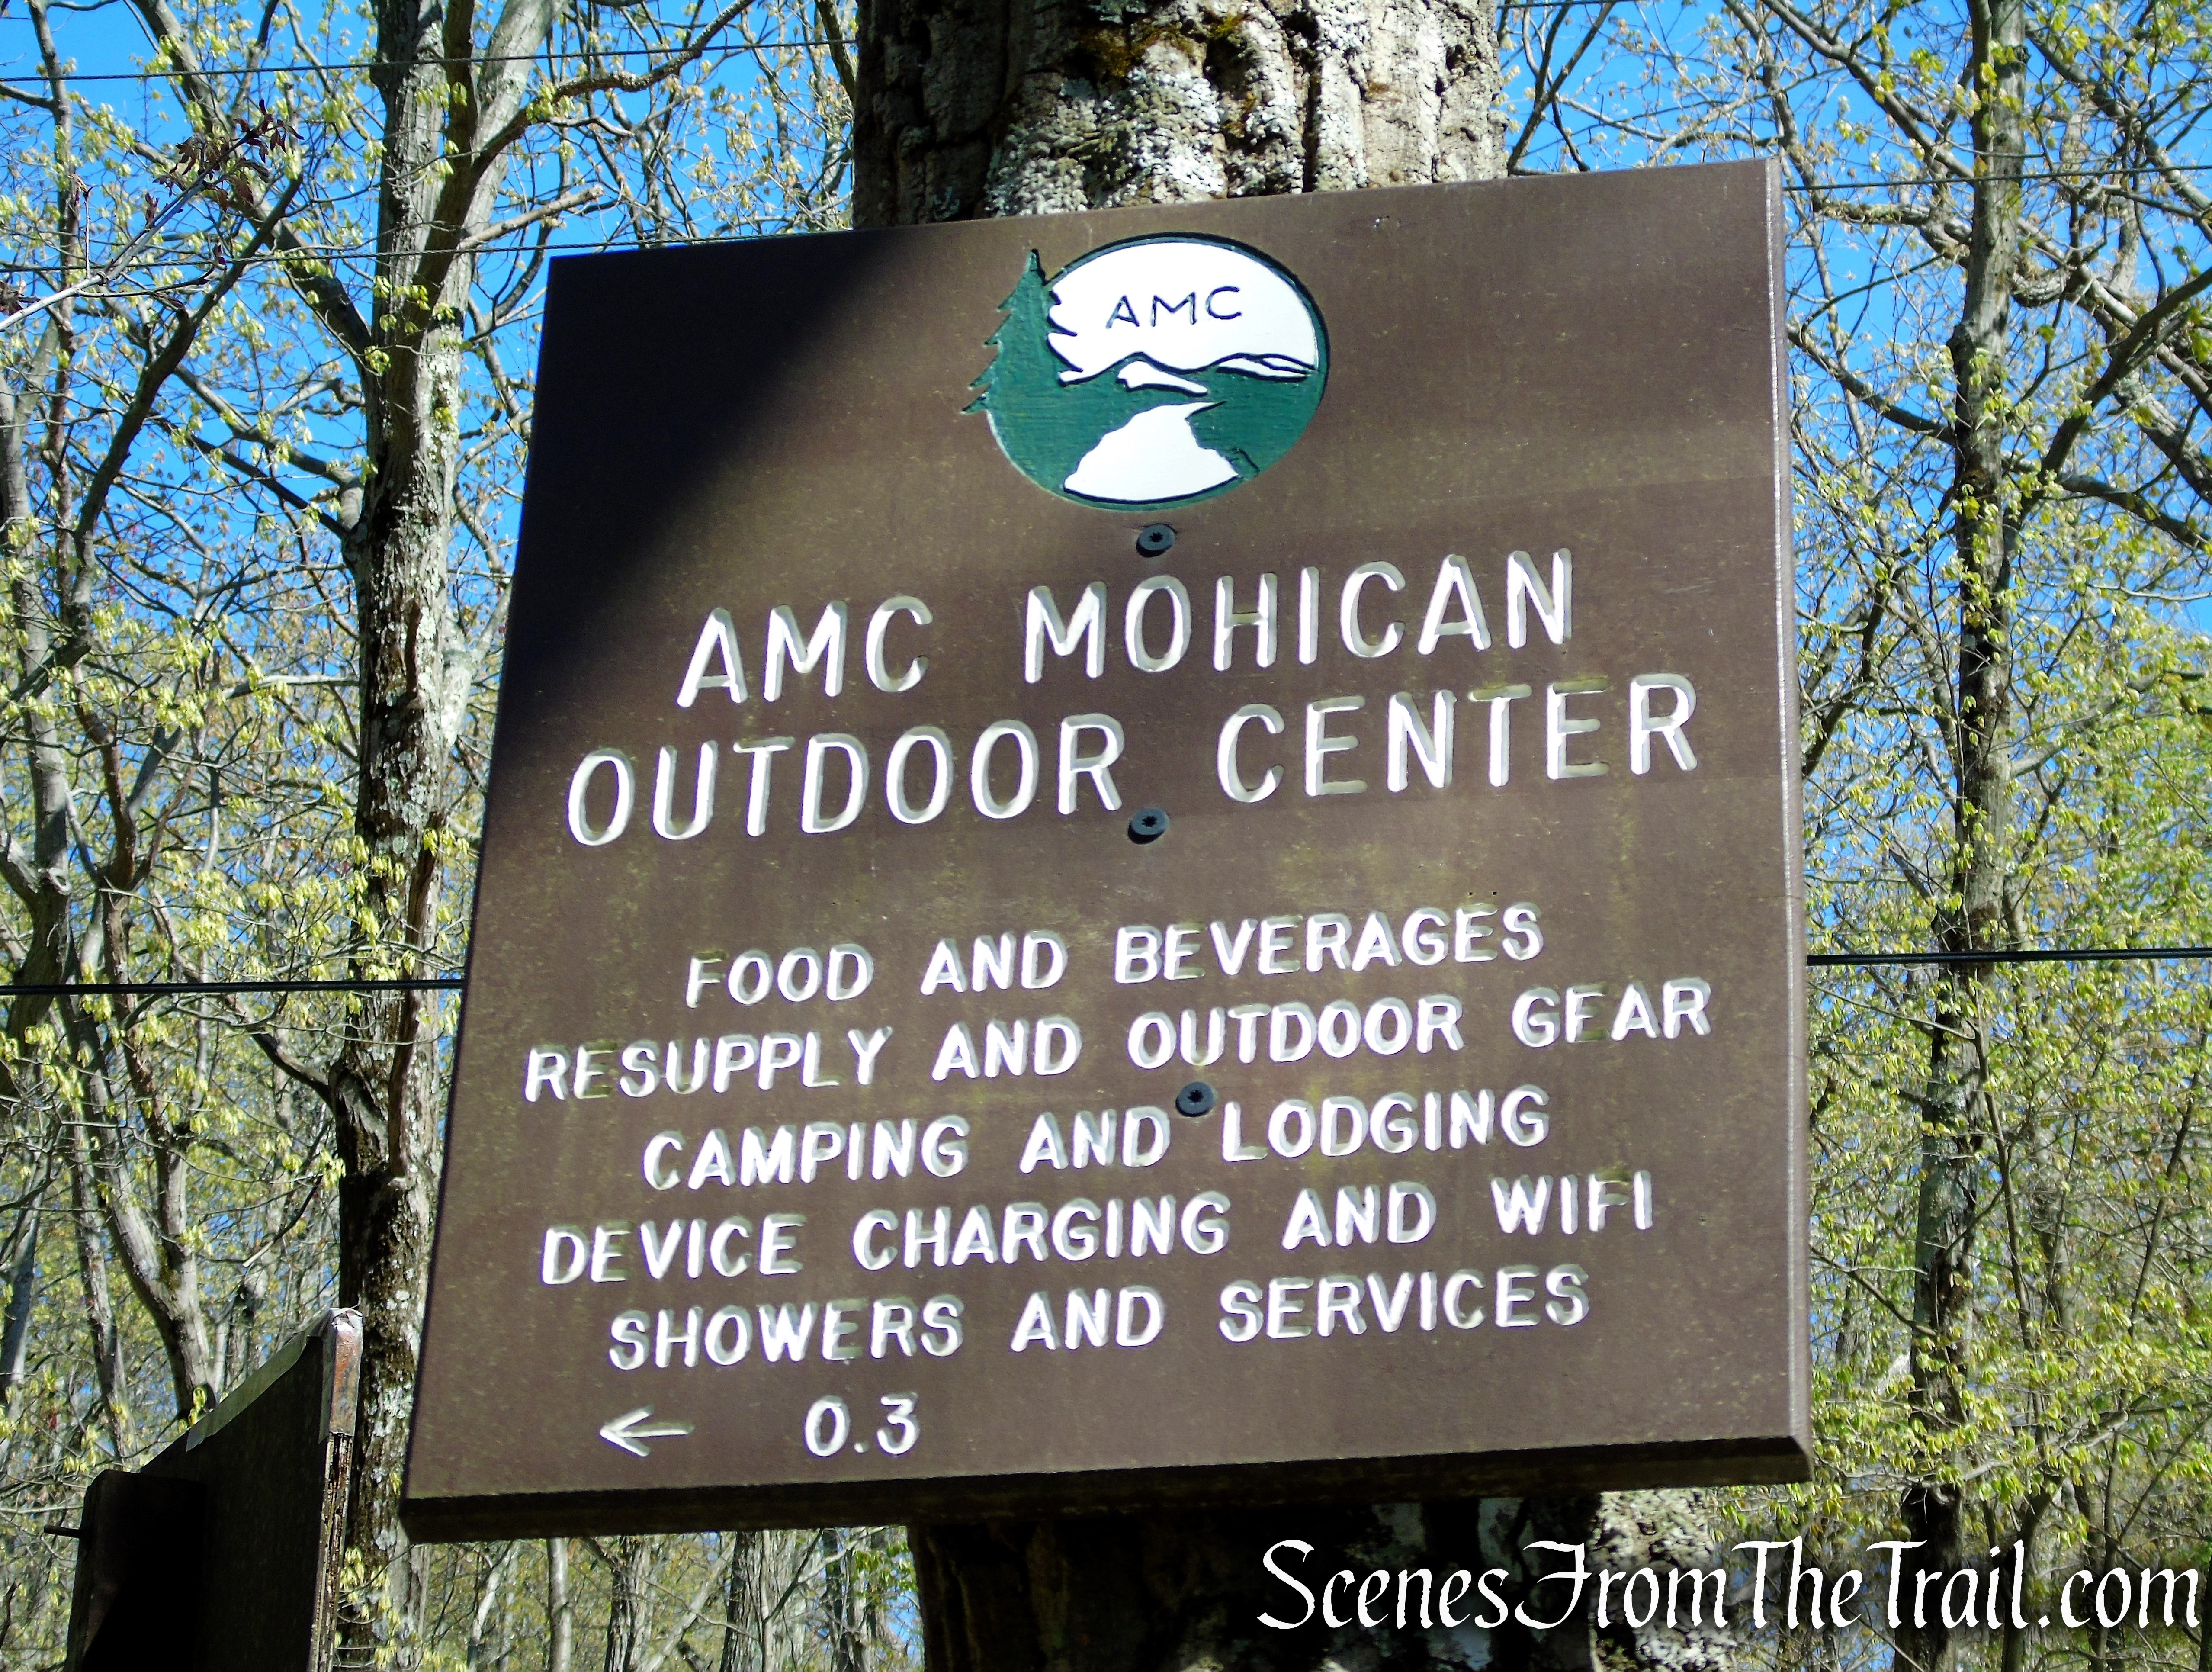 turn left on Camp Mohican Road